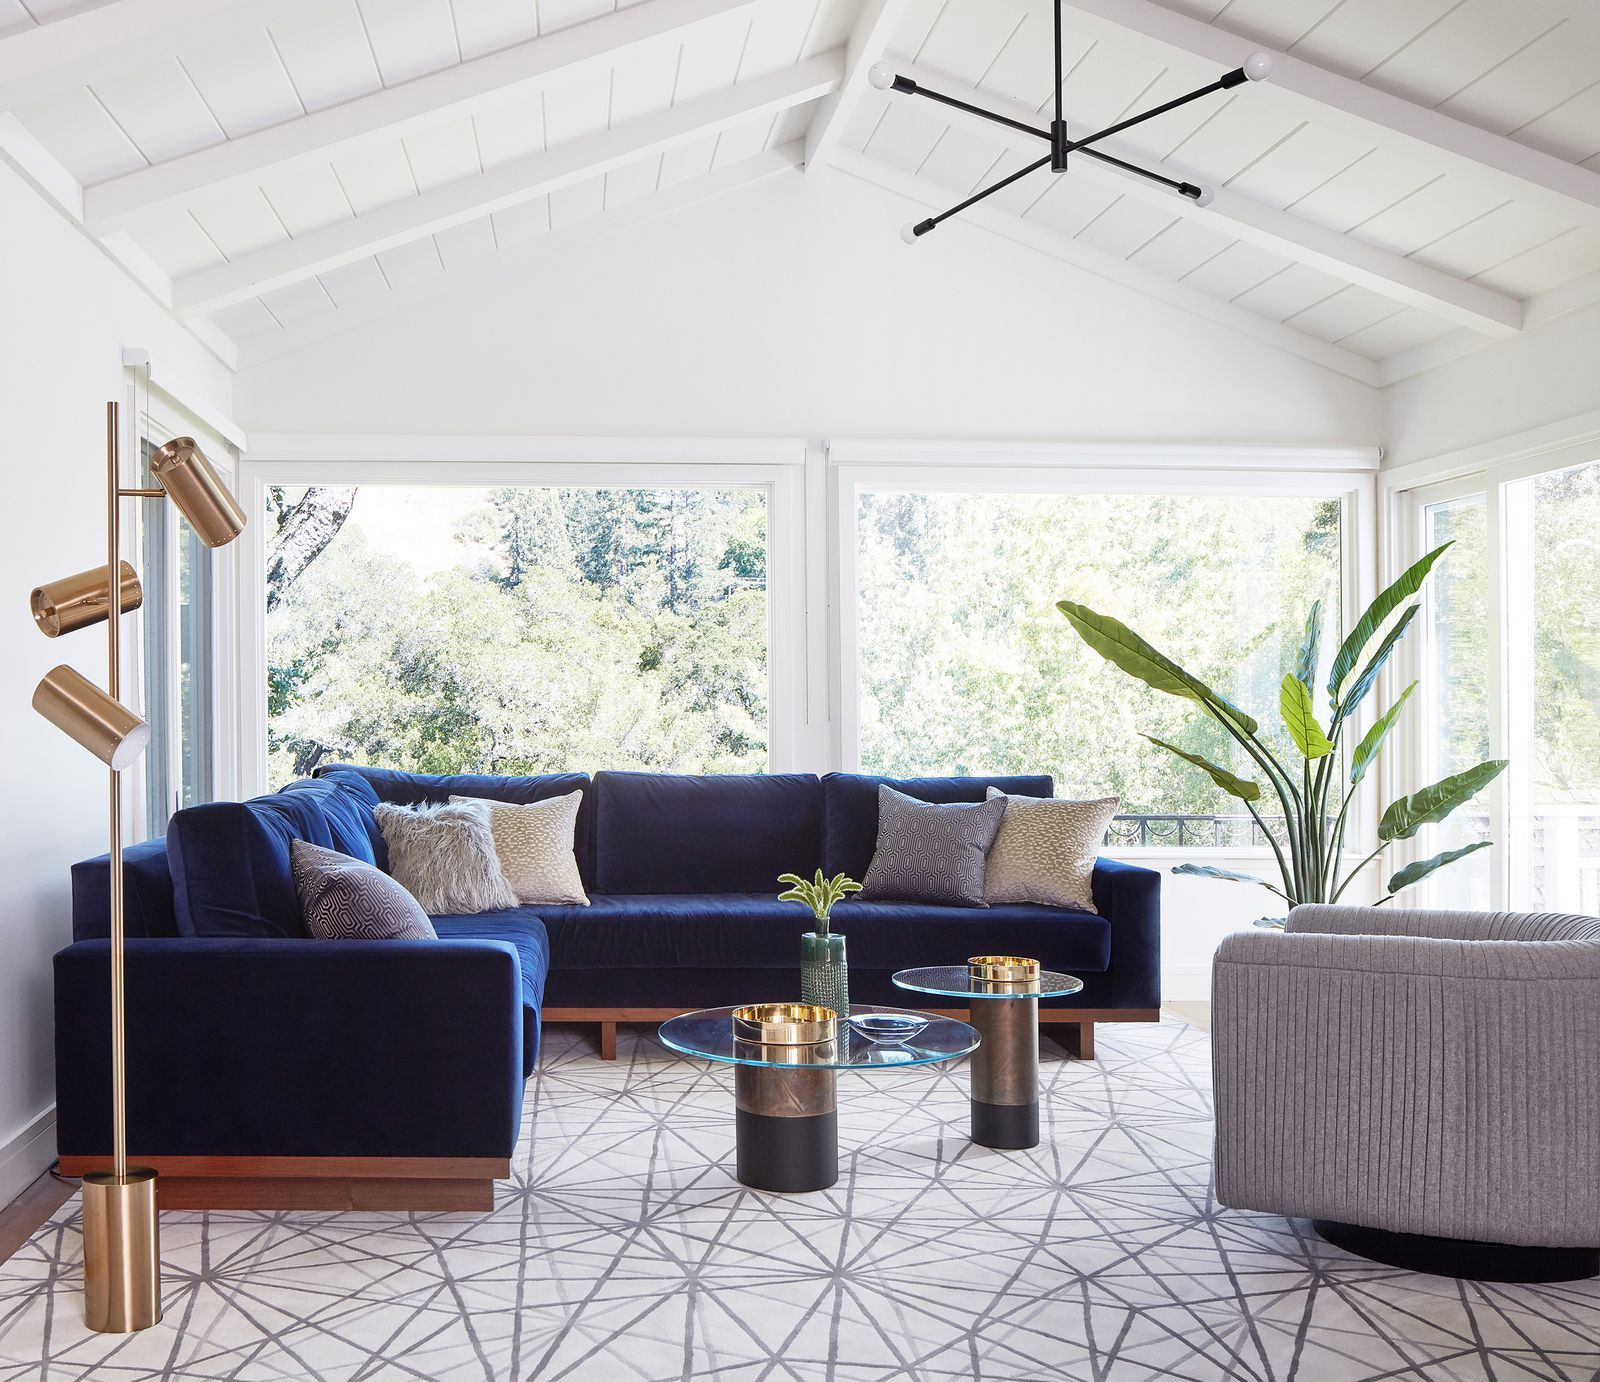 Tour A Mid-Century Modern Home In California With Its Own